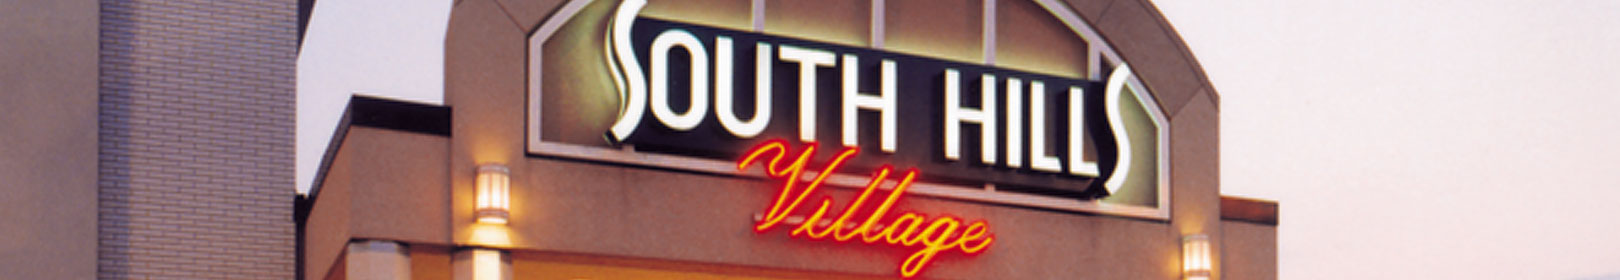 South hills village mall from the ground up south hills village